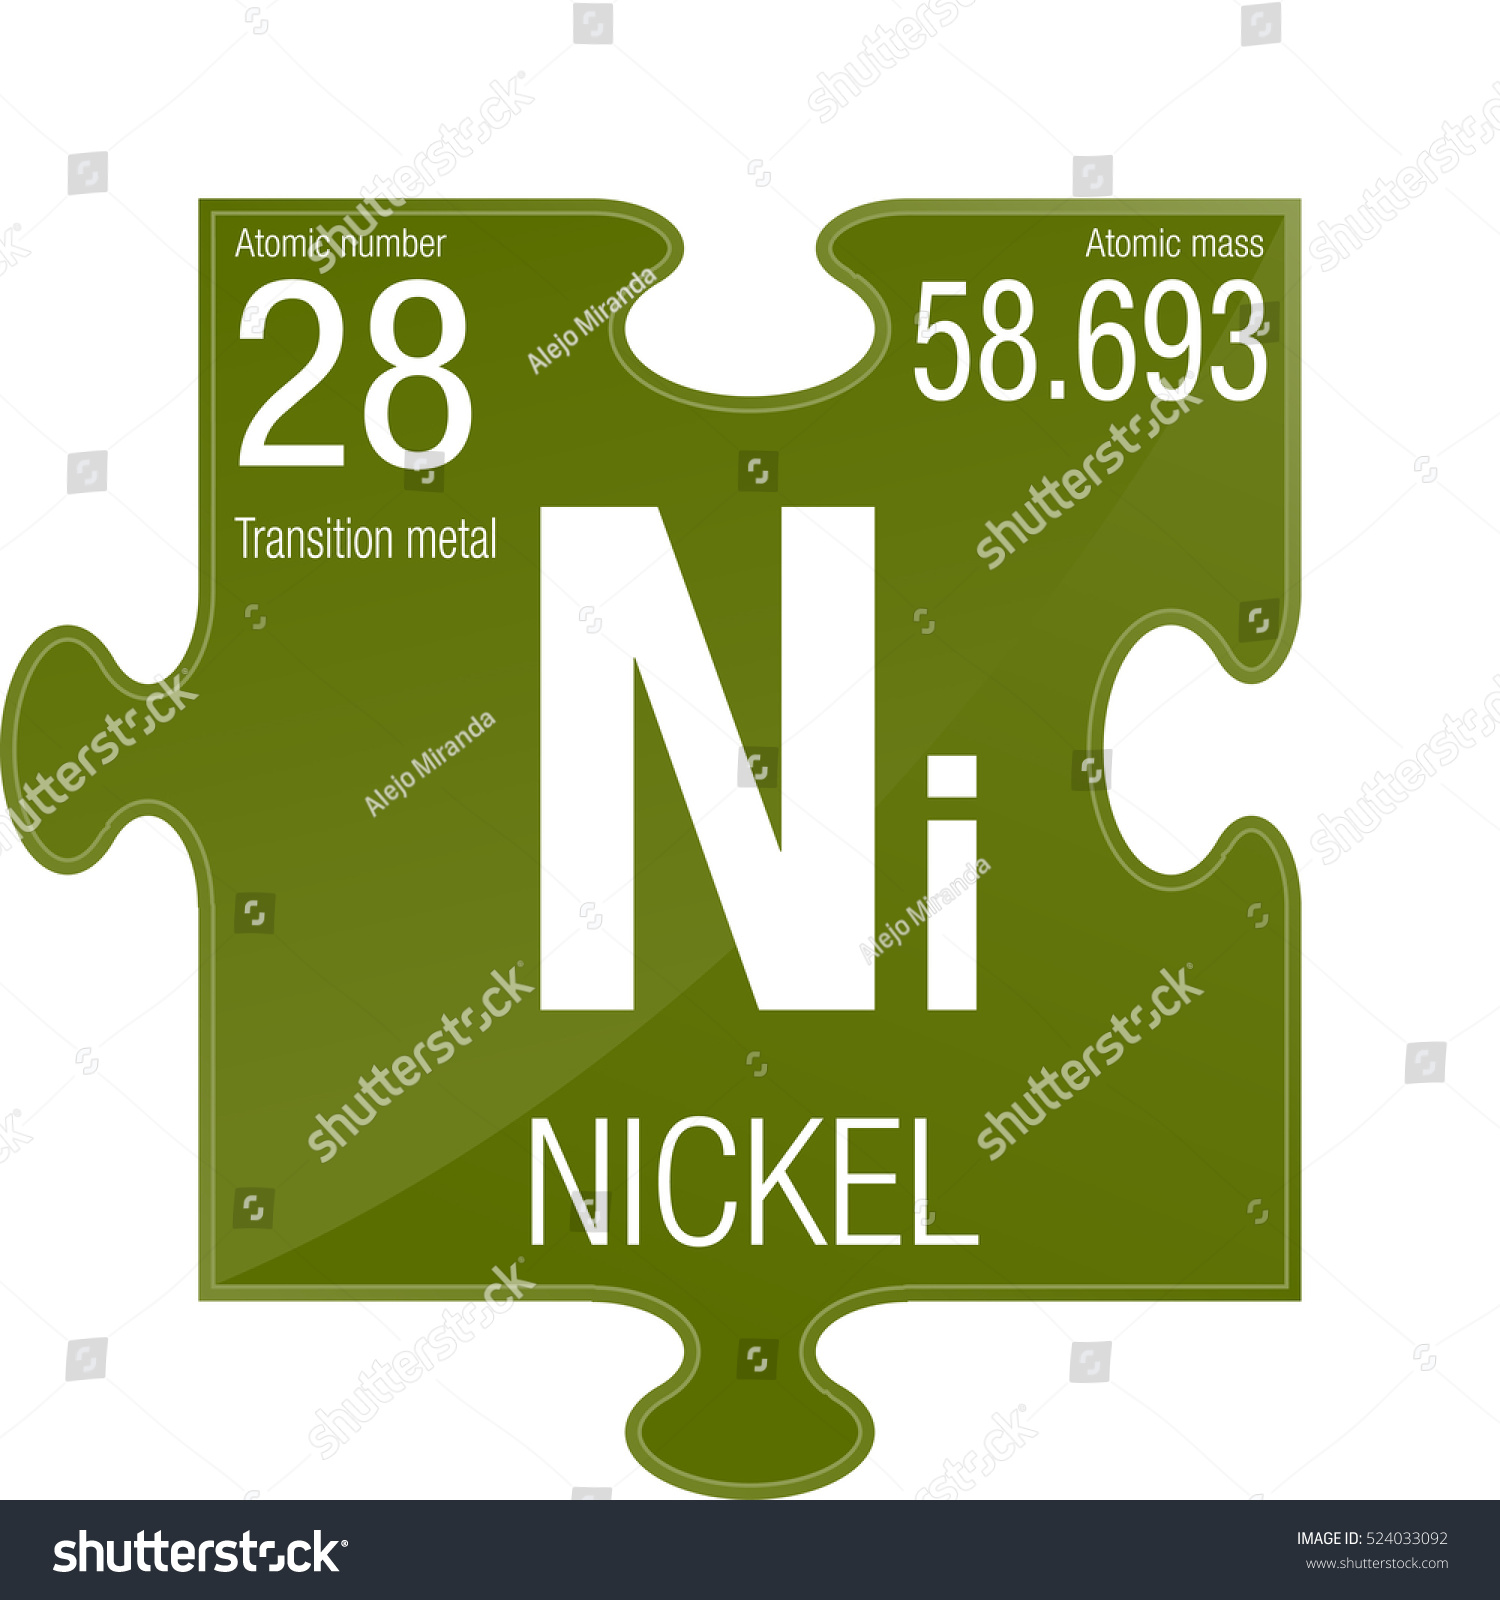 Nickel symbol element number 28 periodic stock vector 524033092 nickel symbol element number 28 of the periodic table of the elements chemistry gamestrikefo Gallery